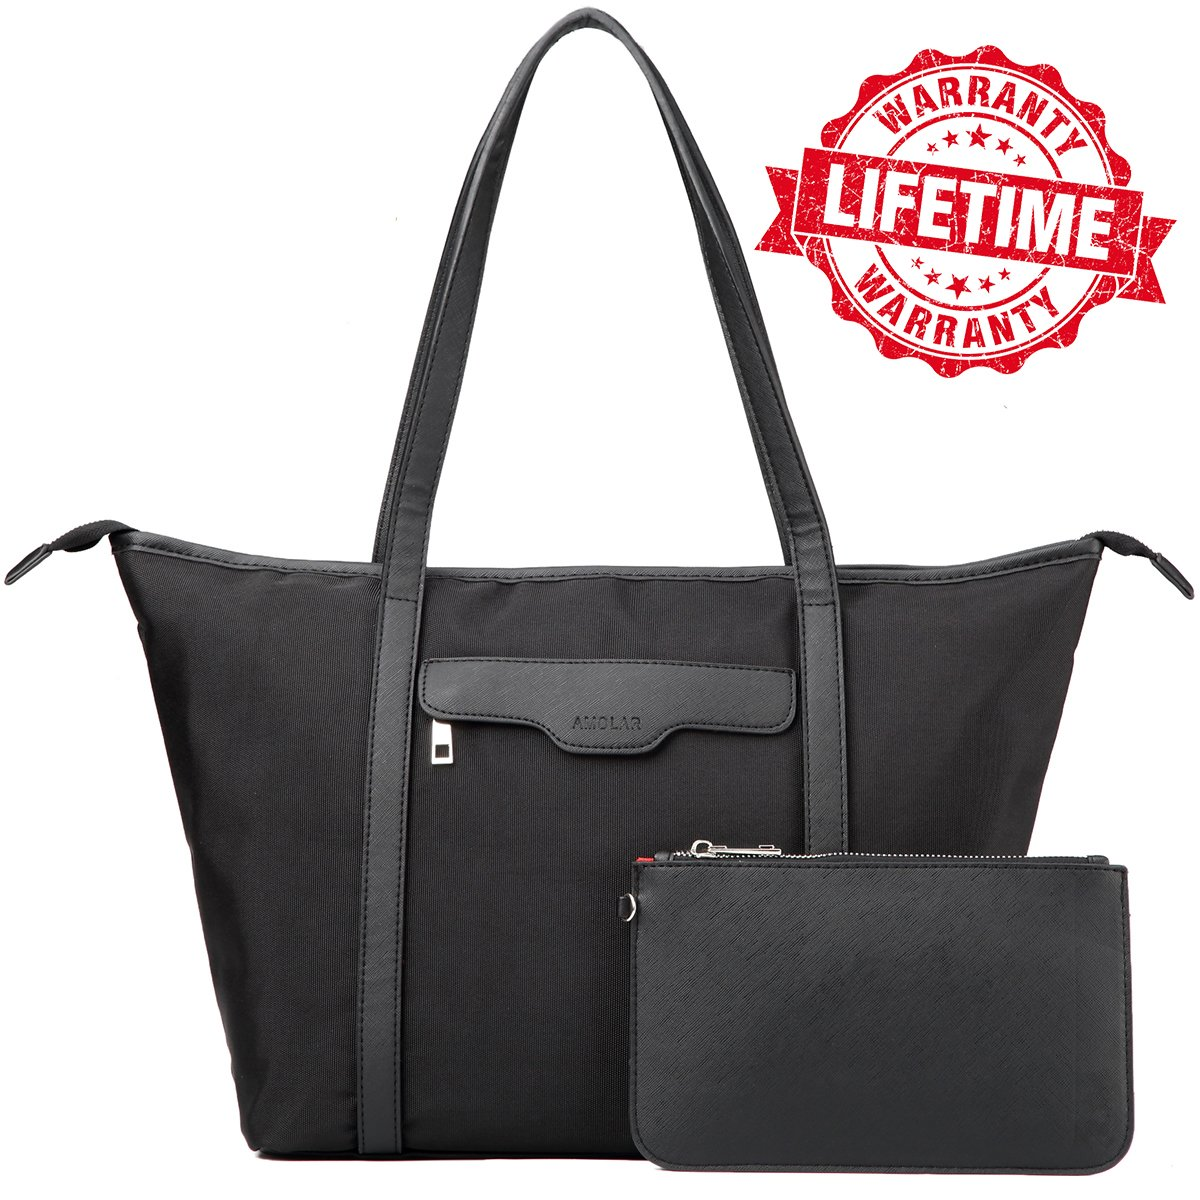 Laptop bags for women, Computer messenger Shoulder Bag for 13.5 Inch MacBook Air, MacBook Pro, Protective Laptop Briefcase Carrying tote Case with Bonus Purse, Black